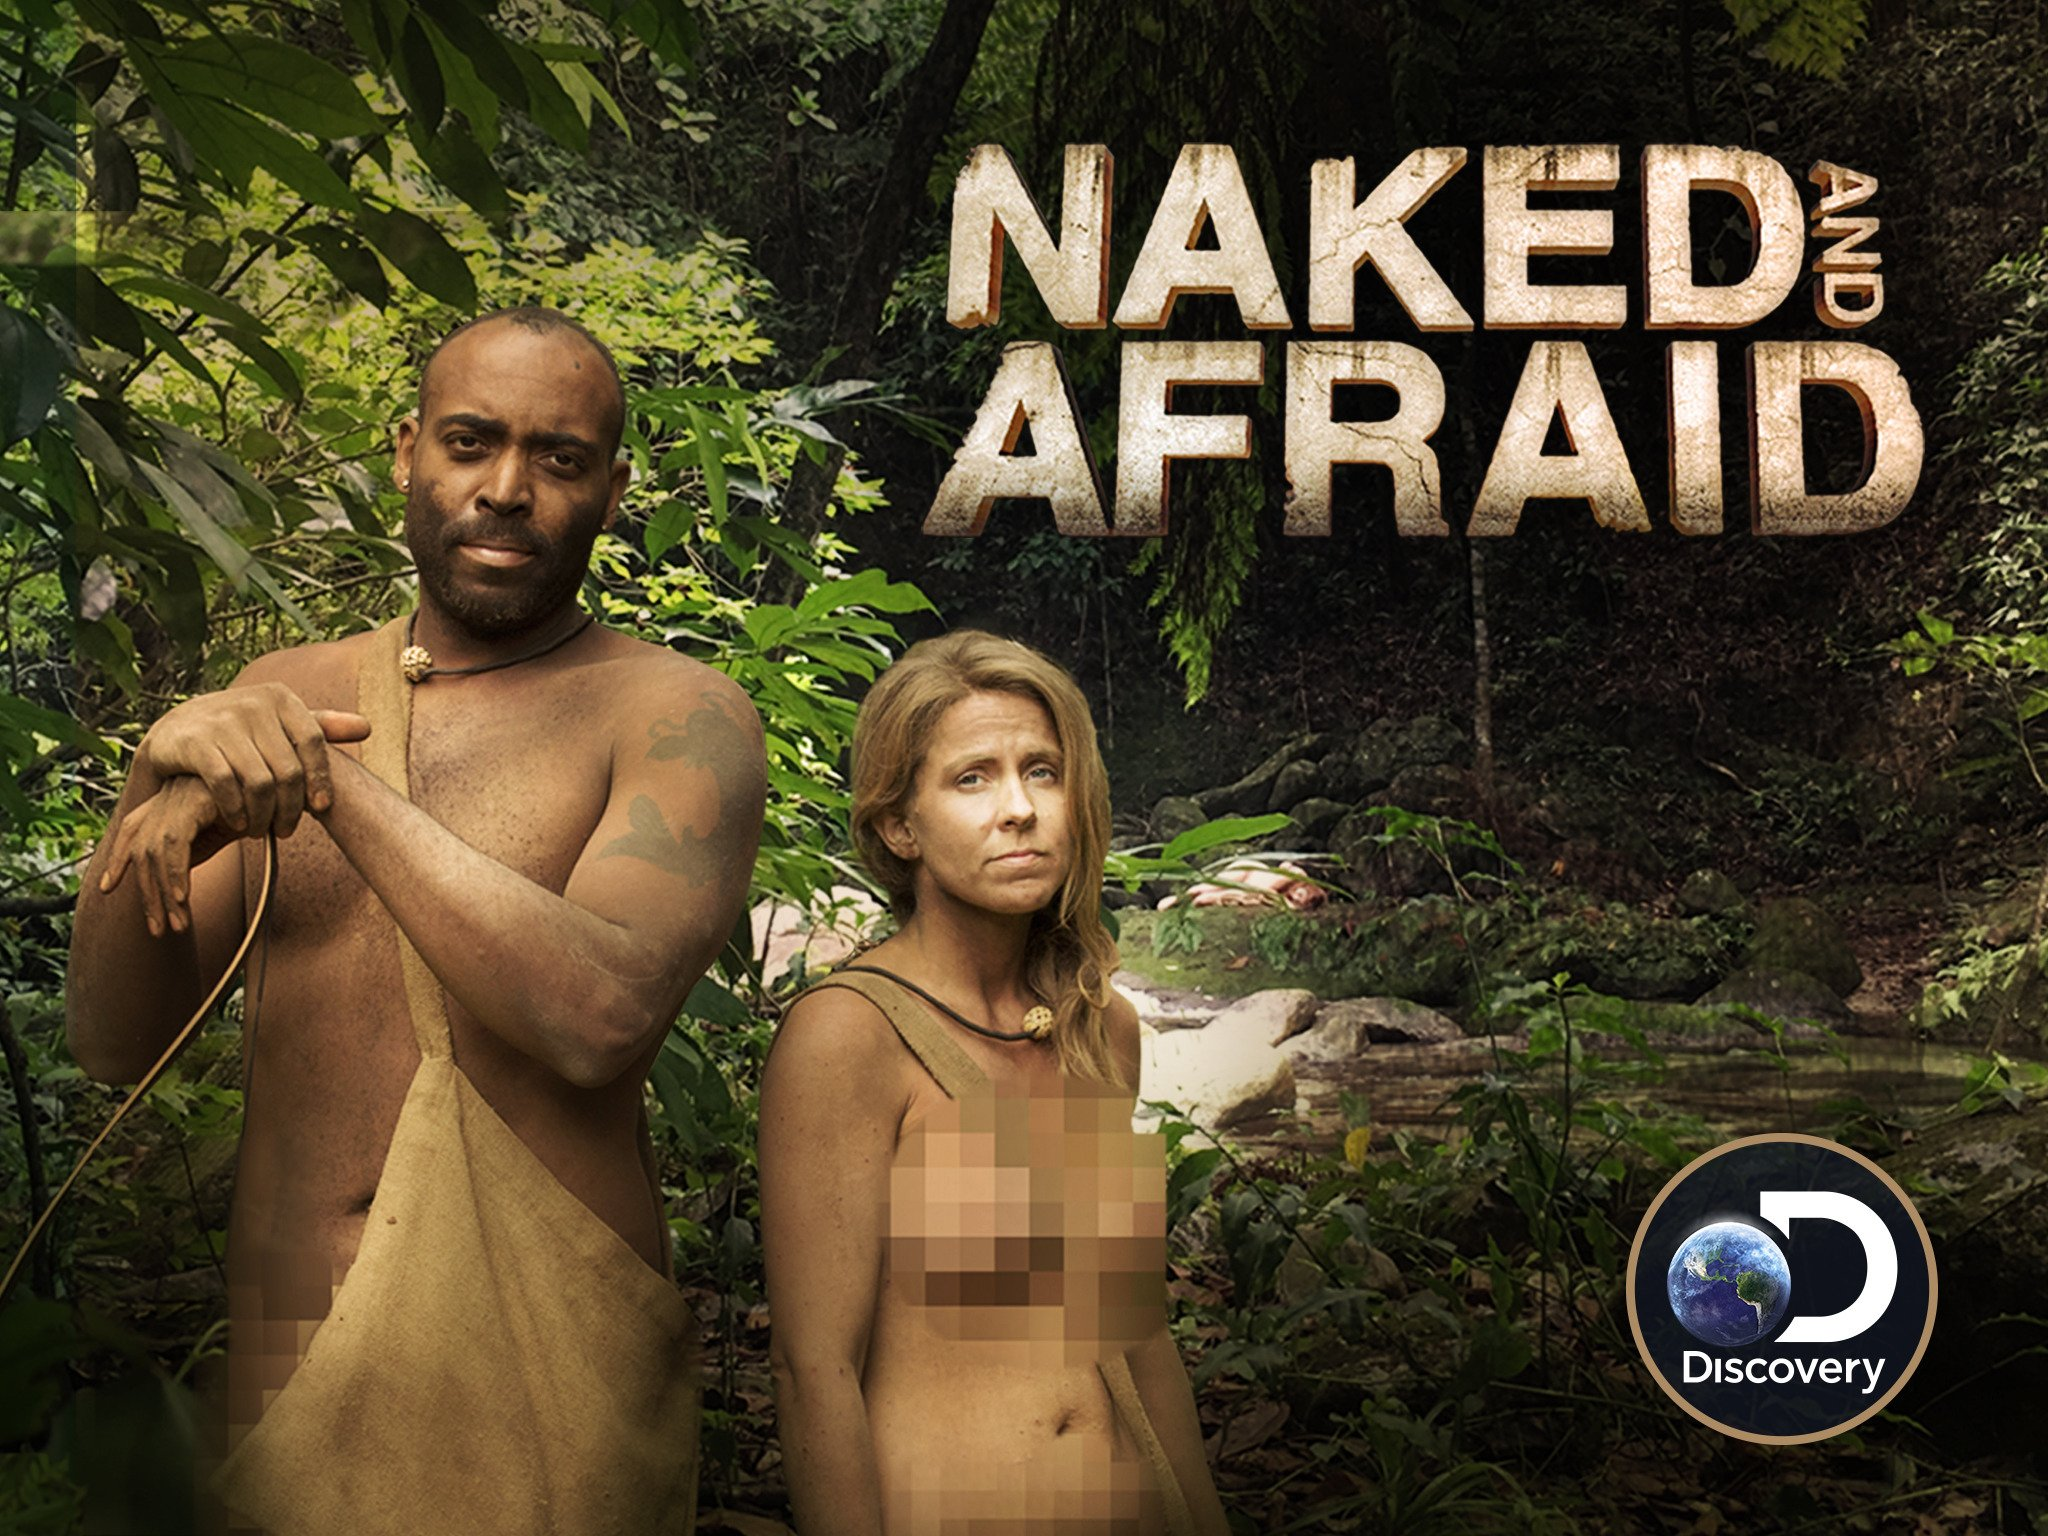 What good Uncensored pics of naked and afraid stars sorry